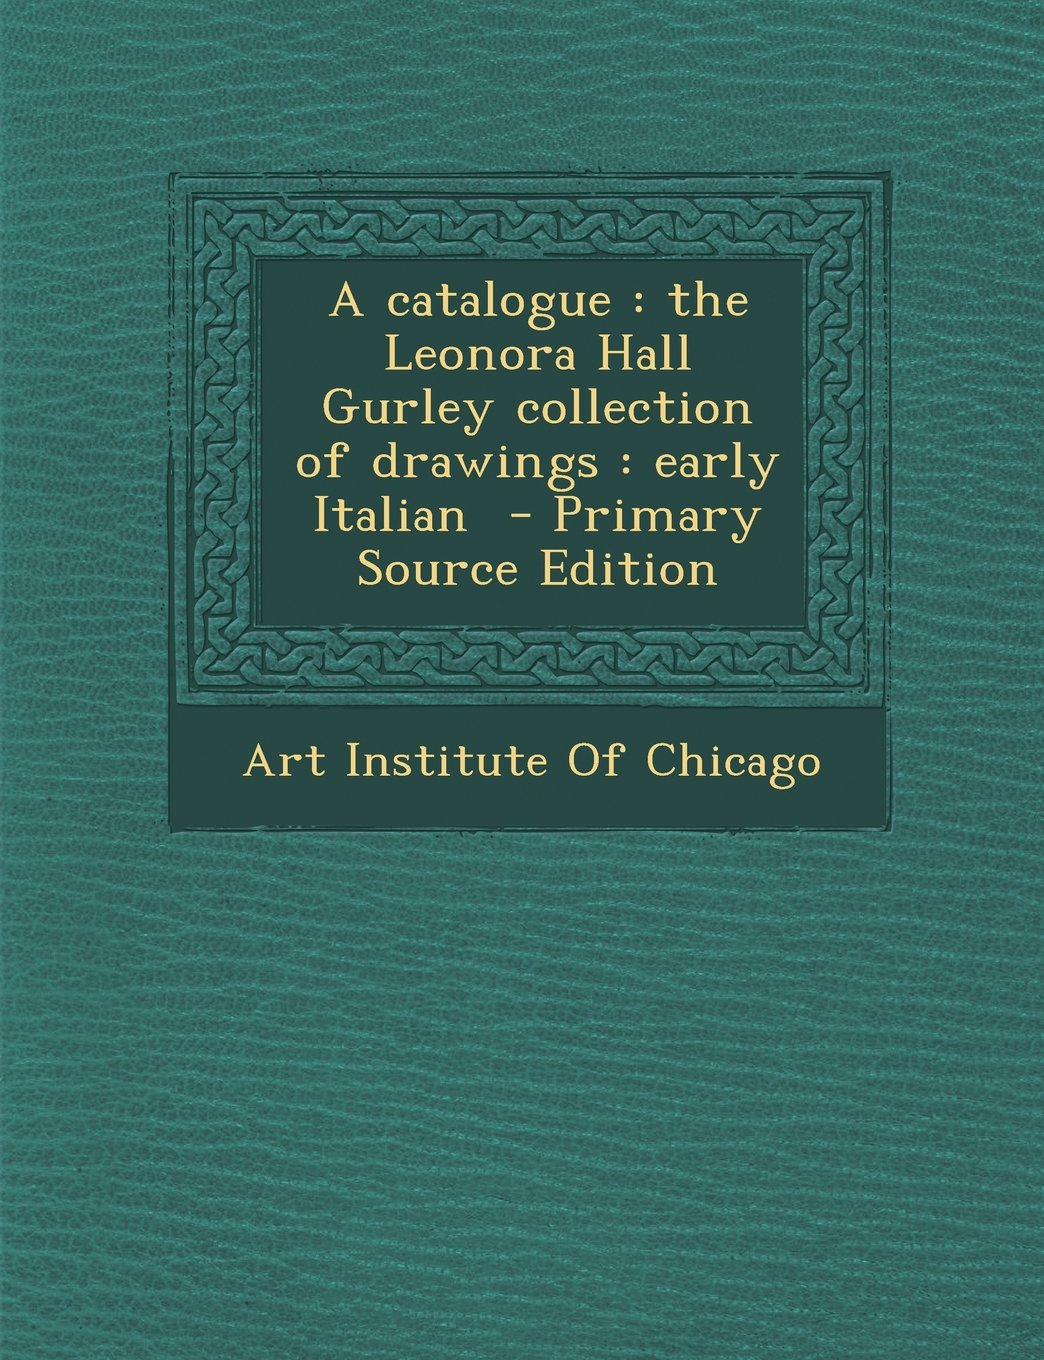 A Catalogue: The Leonora Hall Gurley Collection of Drawings: Early Italian - Primary Source Edition pdf